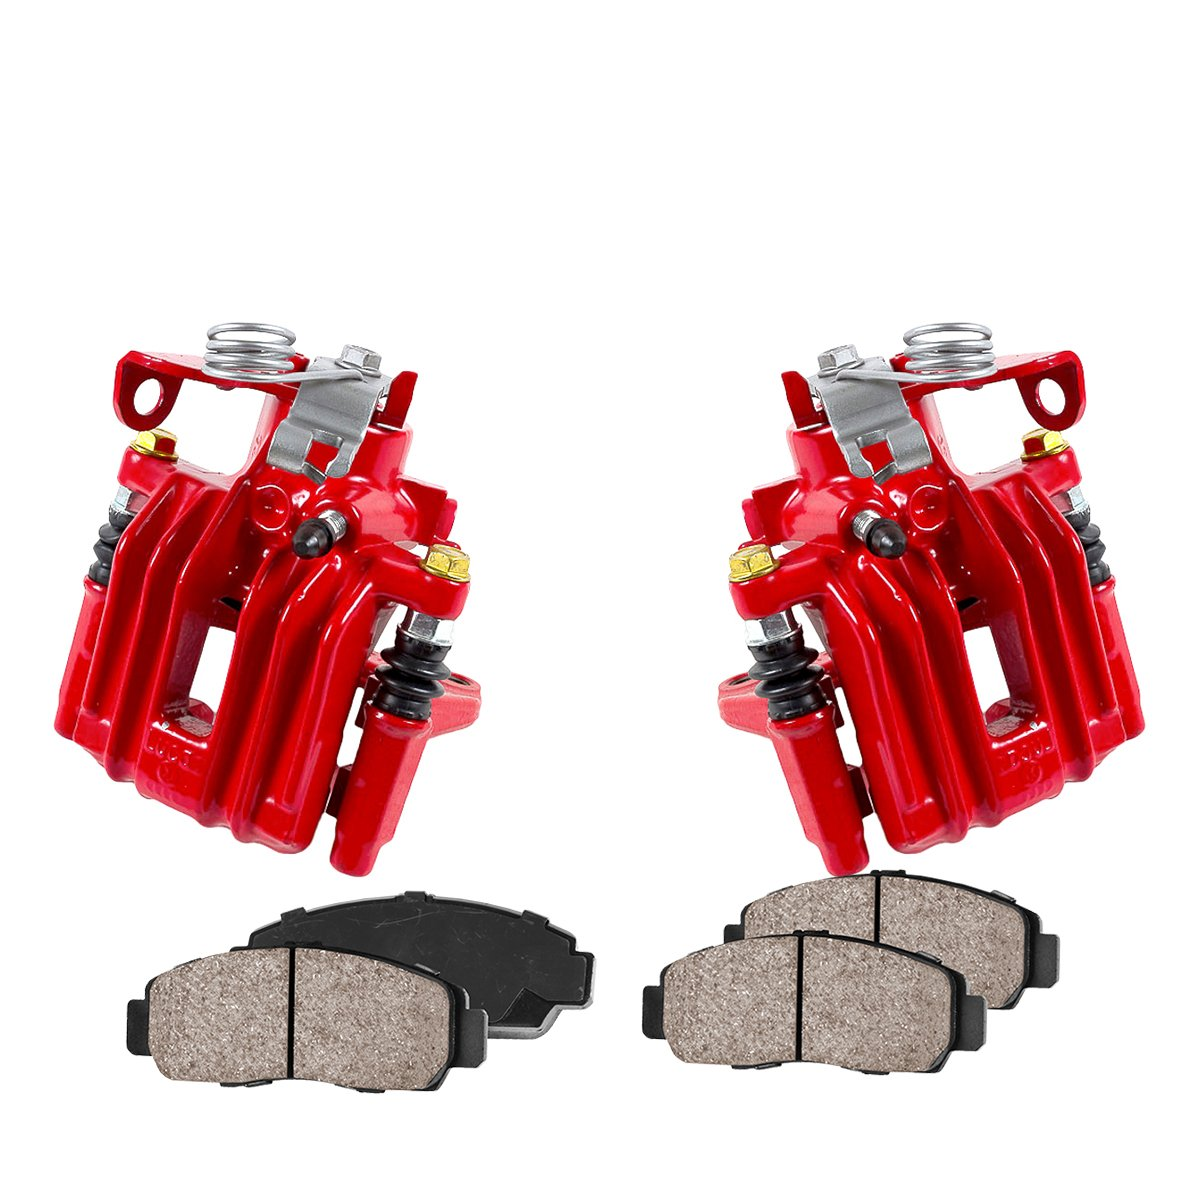 CCK02407 Quiet Low Dust Ceramic Brake Pads REAR Performance Red Powder Coated Calipers + 4 2